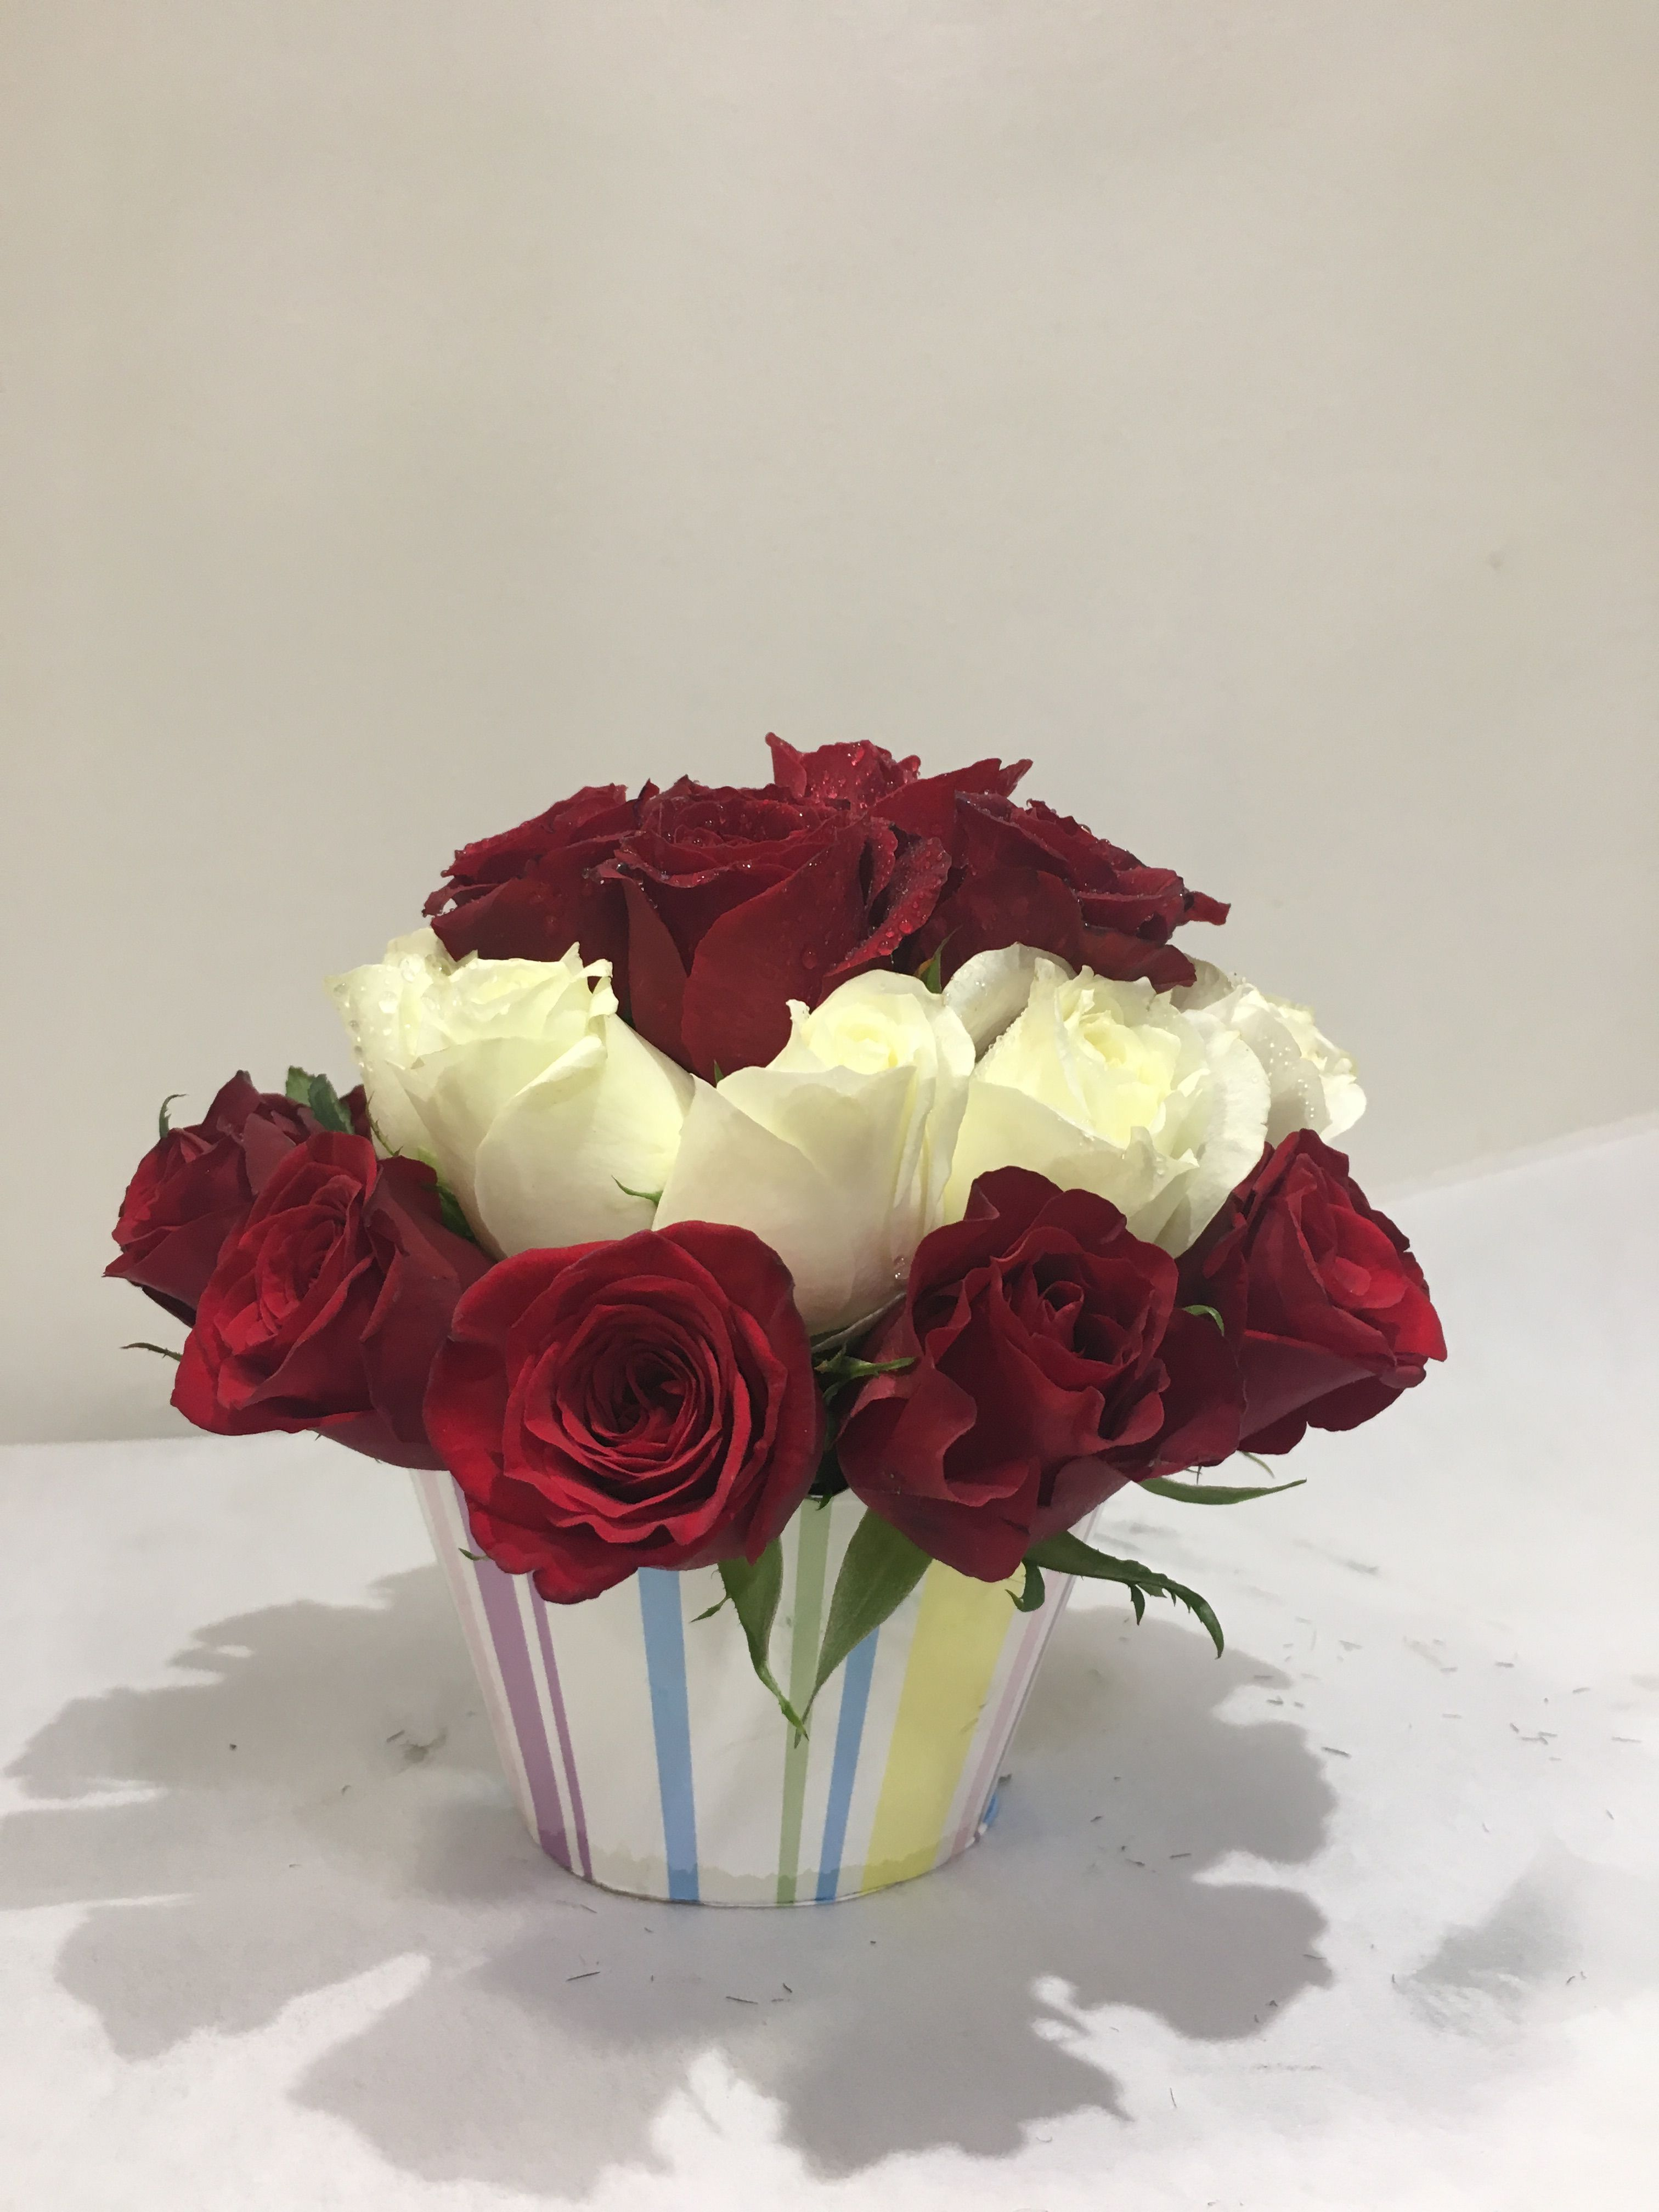 We provide flowers delivery services across the